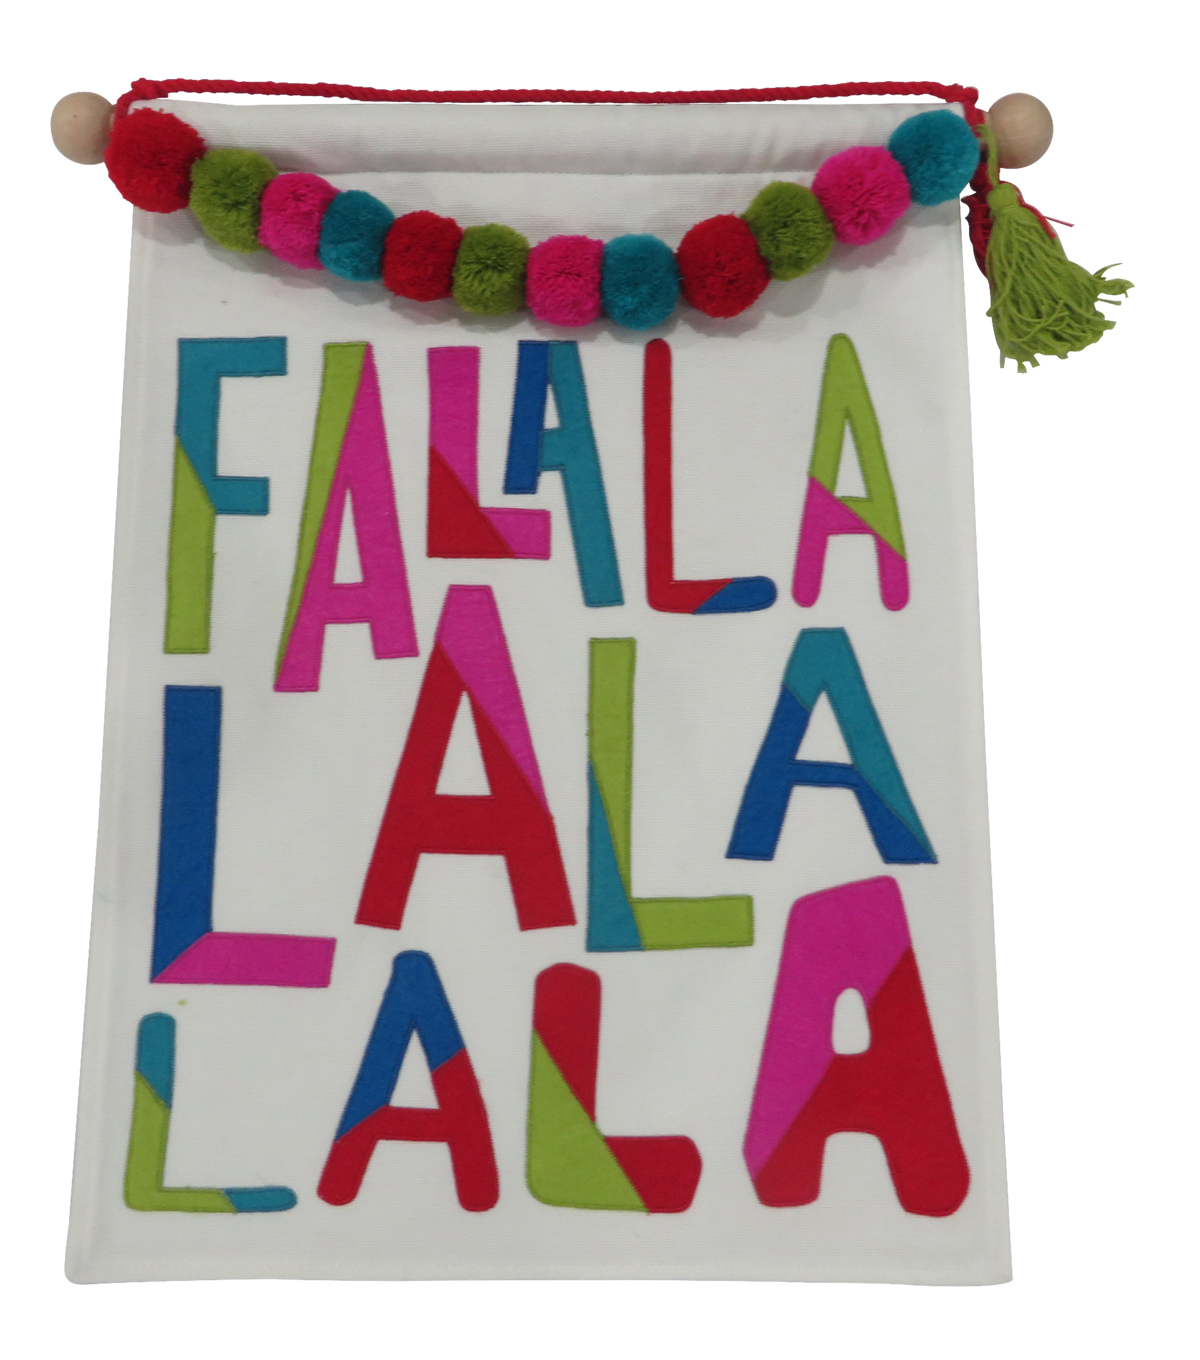 Maker\u0027s Holiday Christmas Ho Ho Ho Decor Banner-Fa La La